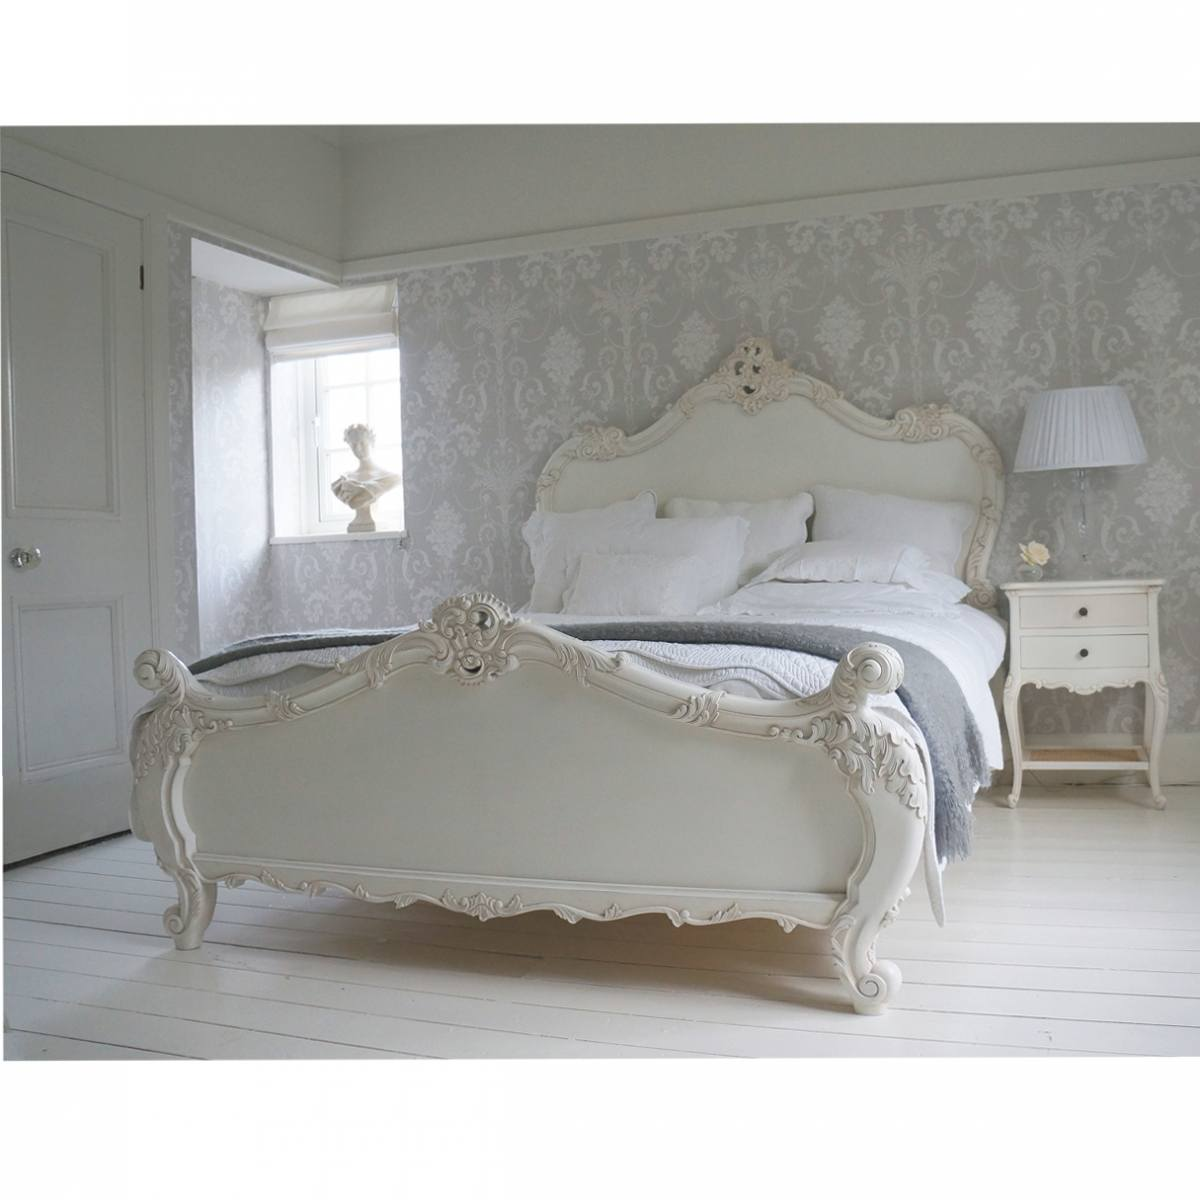 provencal sassy white french bed french bedroom company. Black Bedroom Furniture Sets. Home Design Ideas